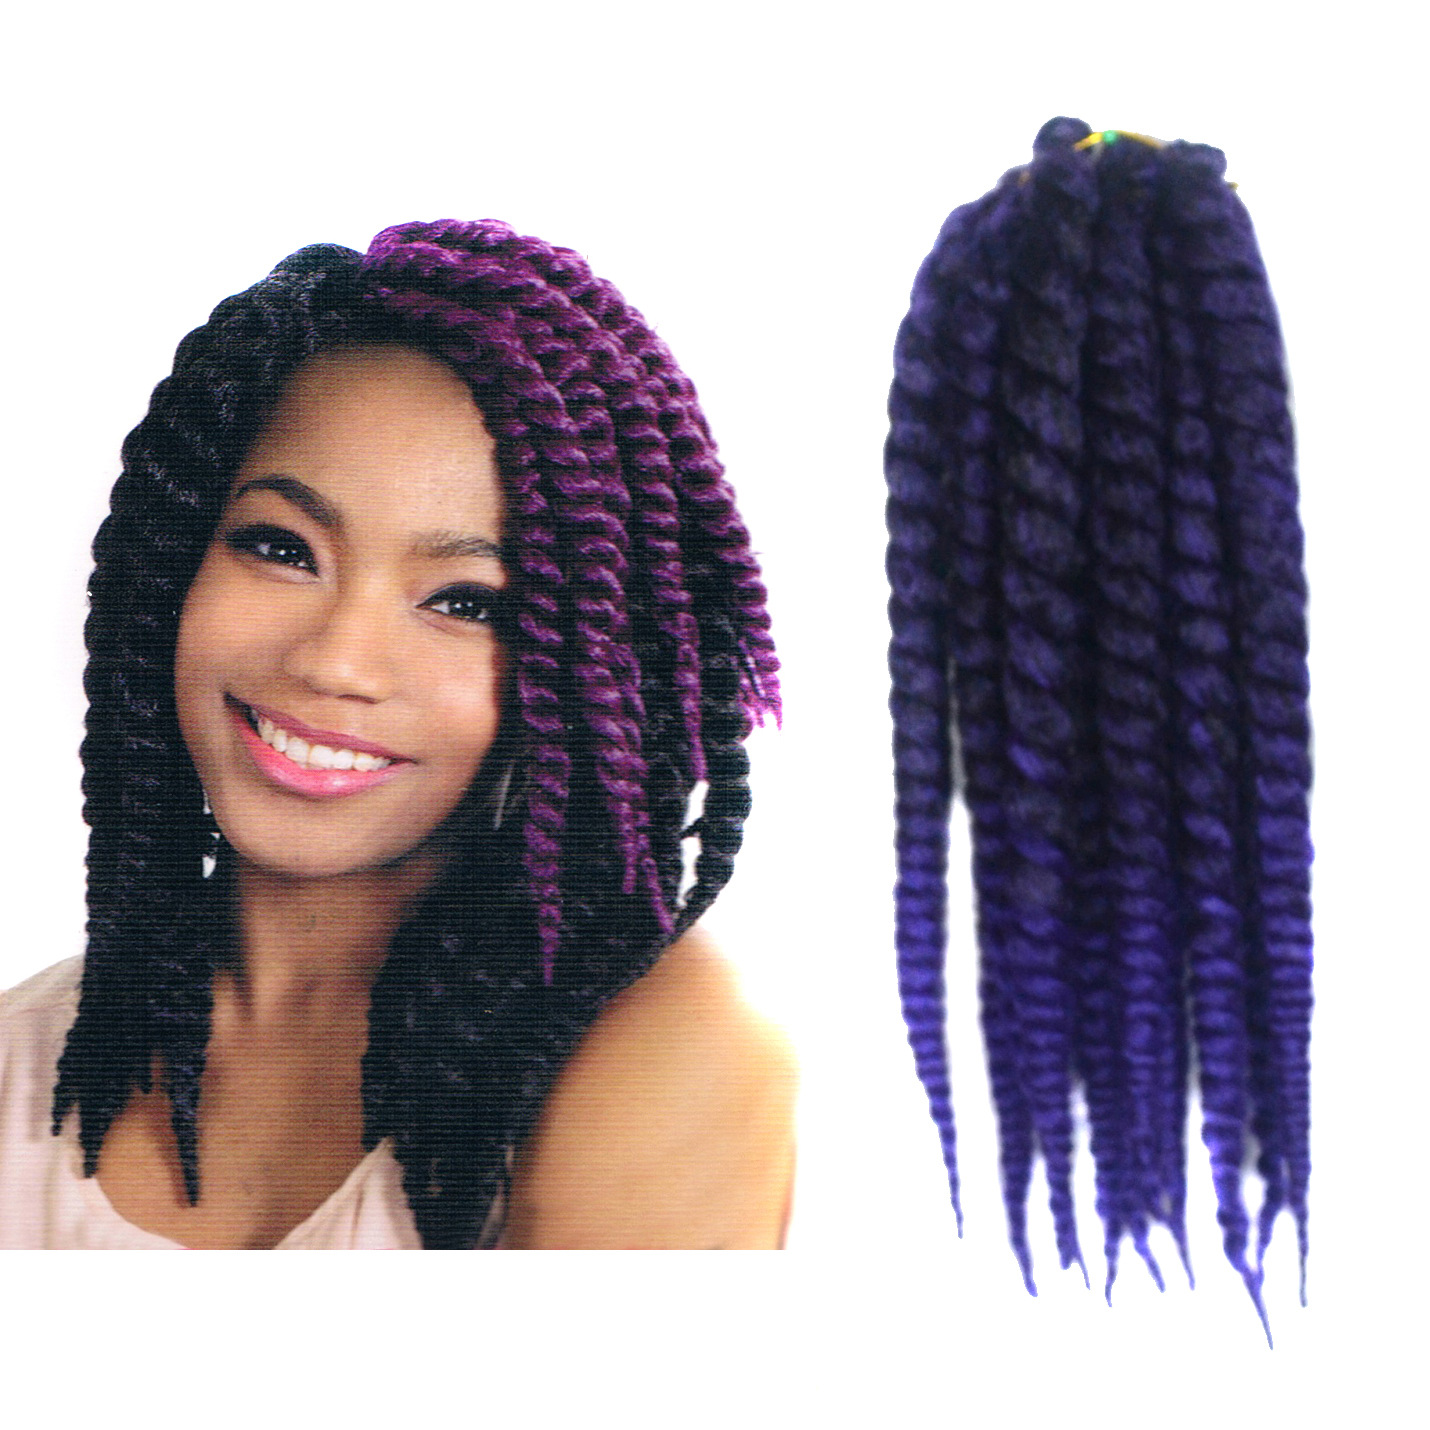 Crochet Box Braids 12 Inch : 12 Inch Cubic Twist Crochet Braids Hair Extensions Ombre Braiding ...